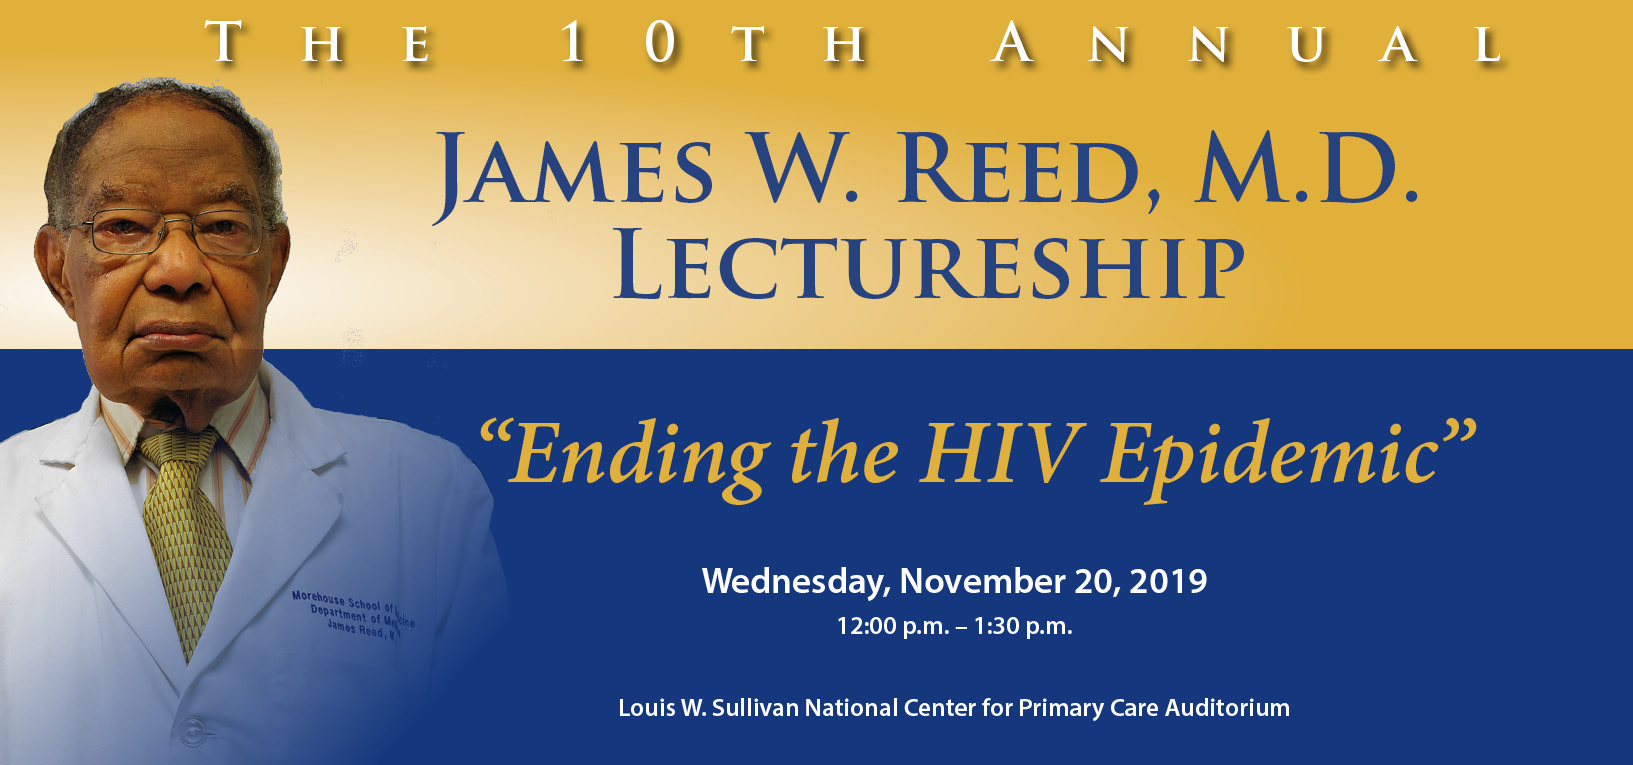 James W. Reed, M.D. Lectureship